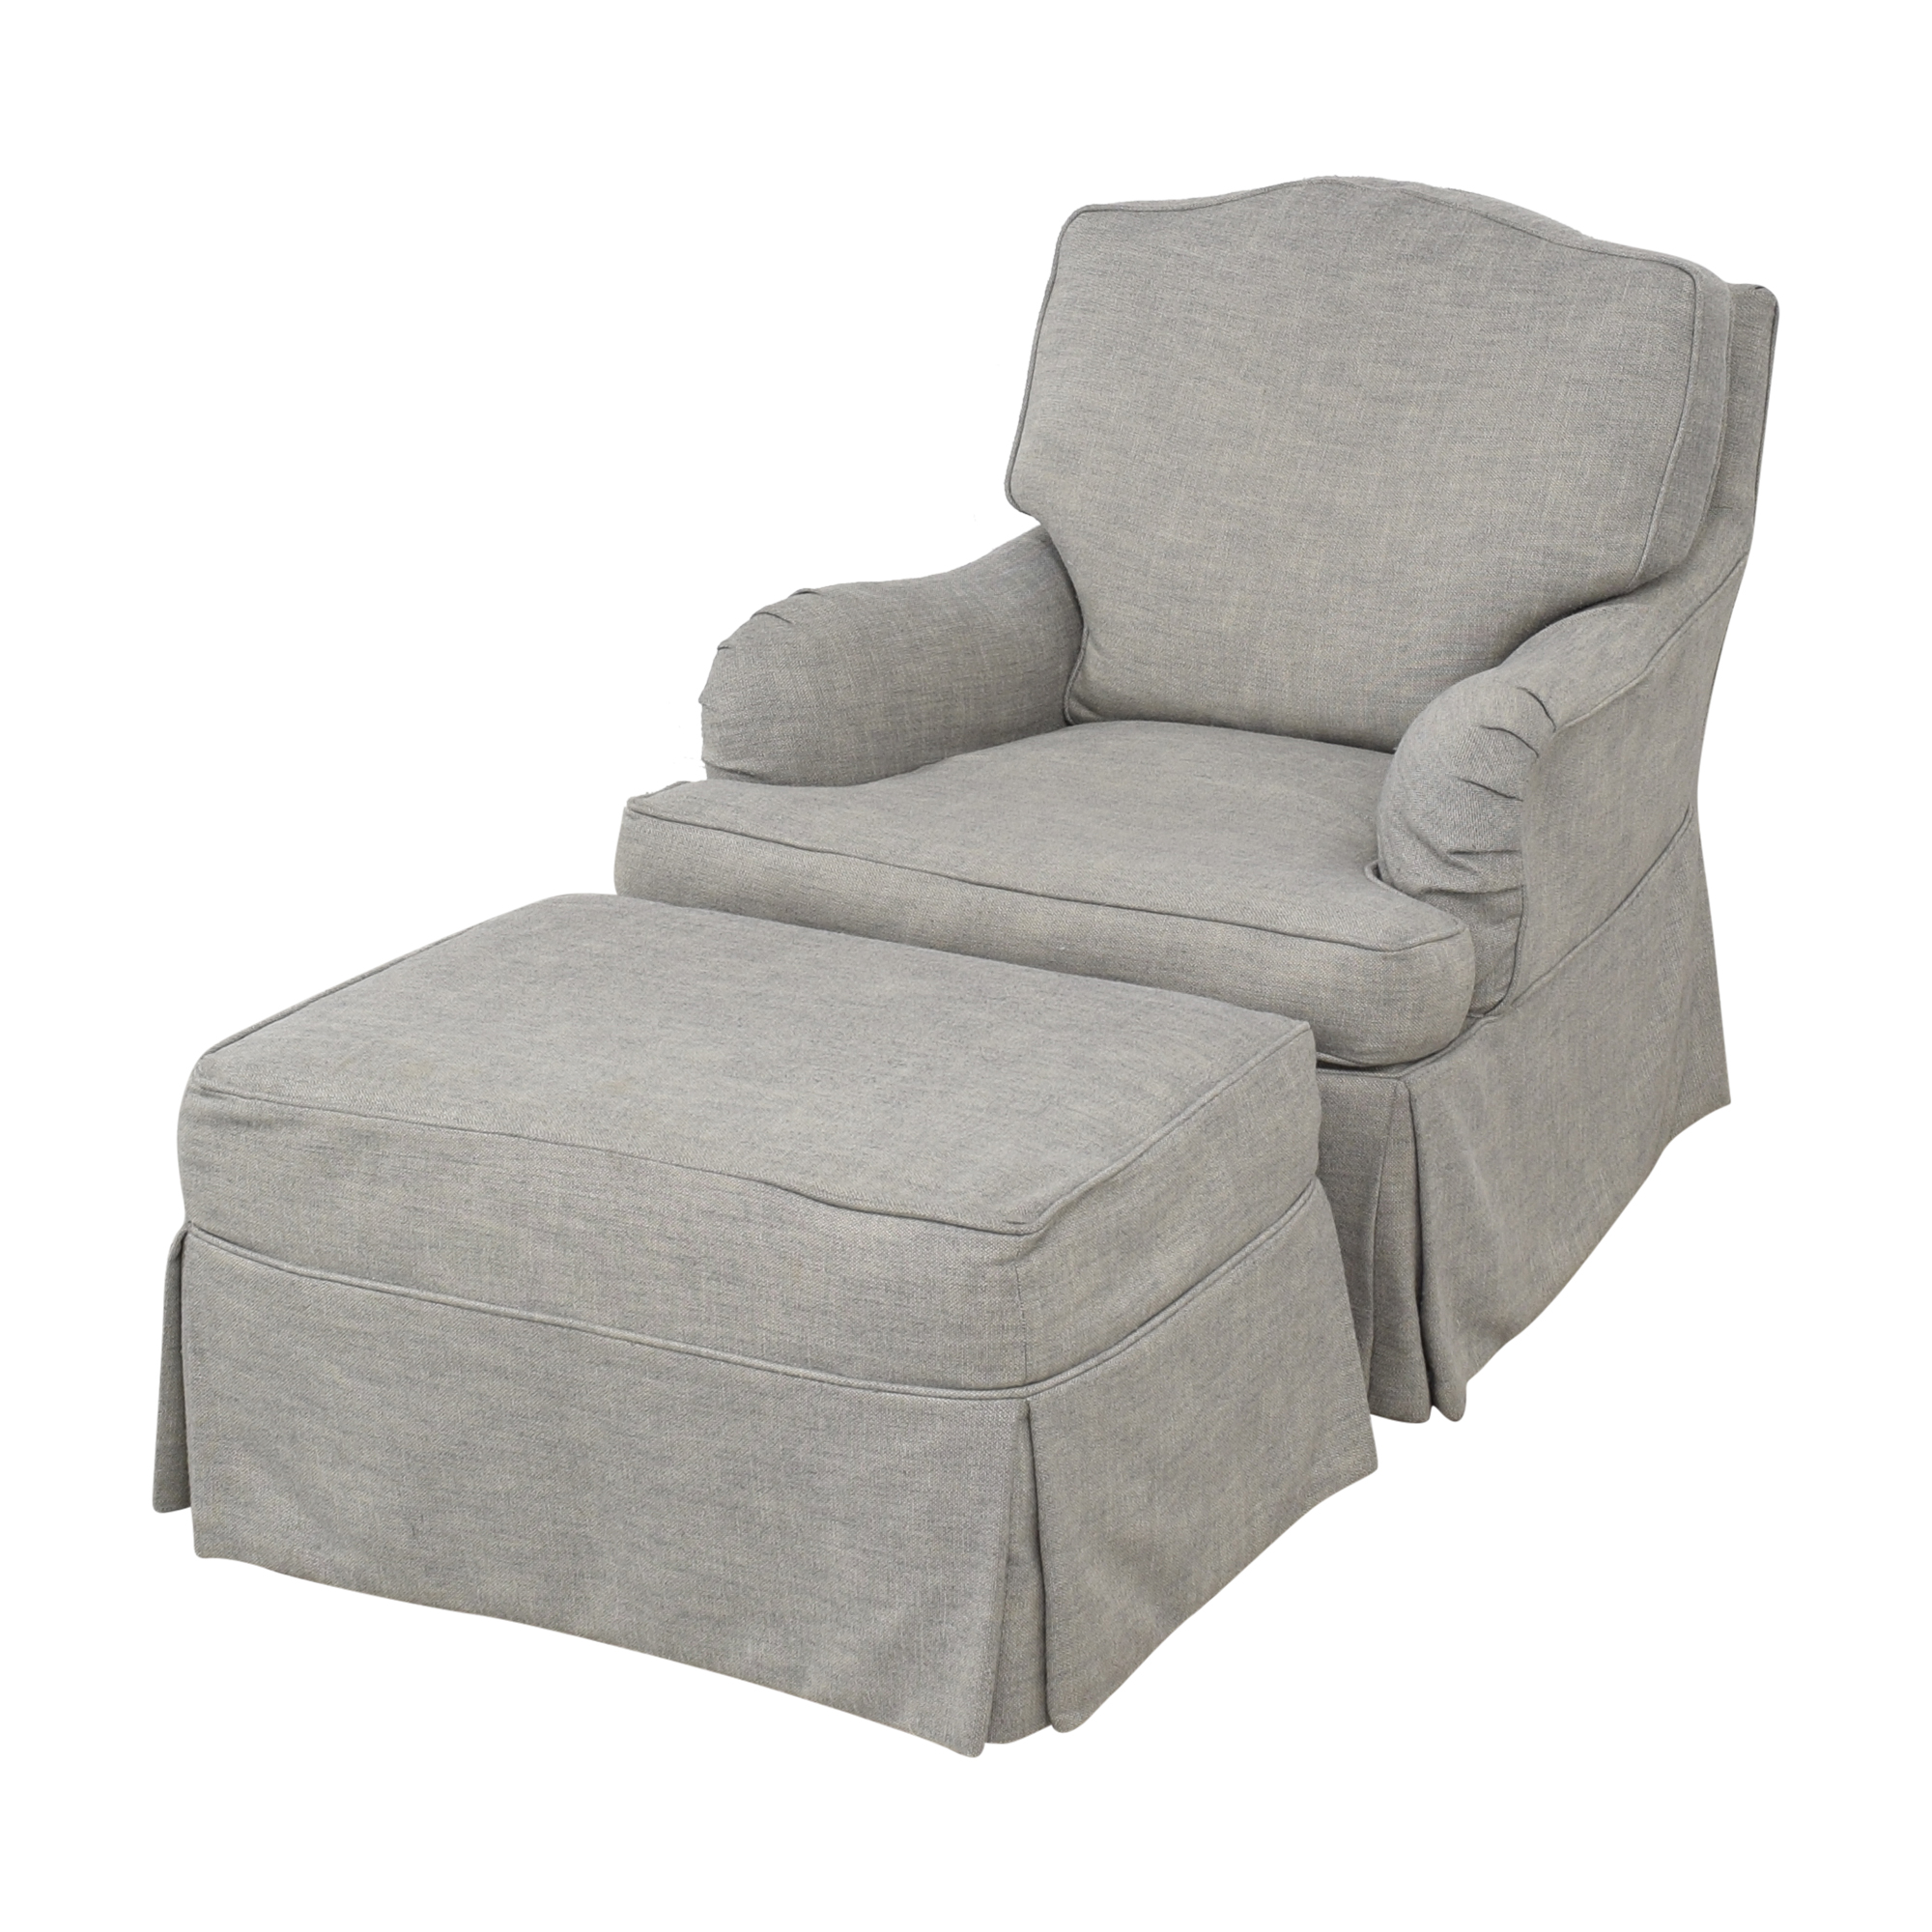 Restoration Hardware Restoration Hardware Classic Camelback Slipcovered Swivel Glider and Ottoman nyc